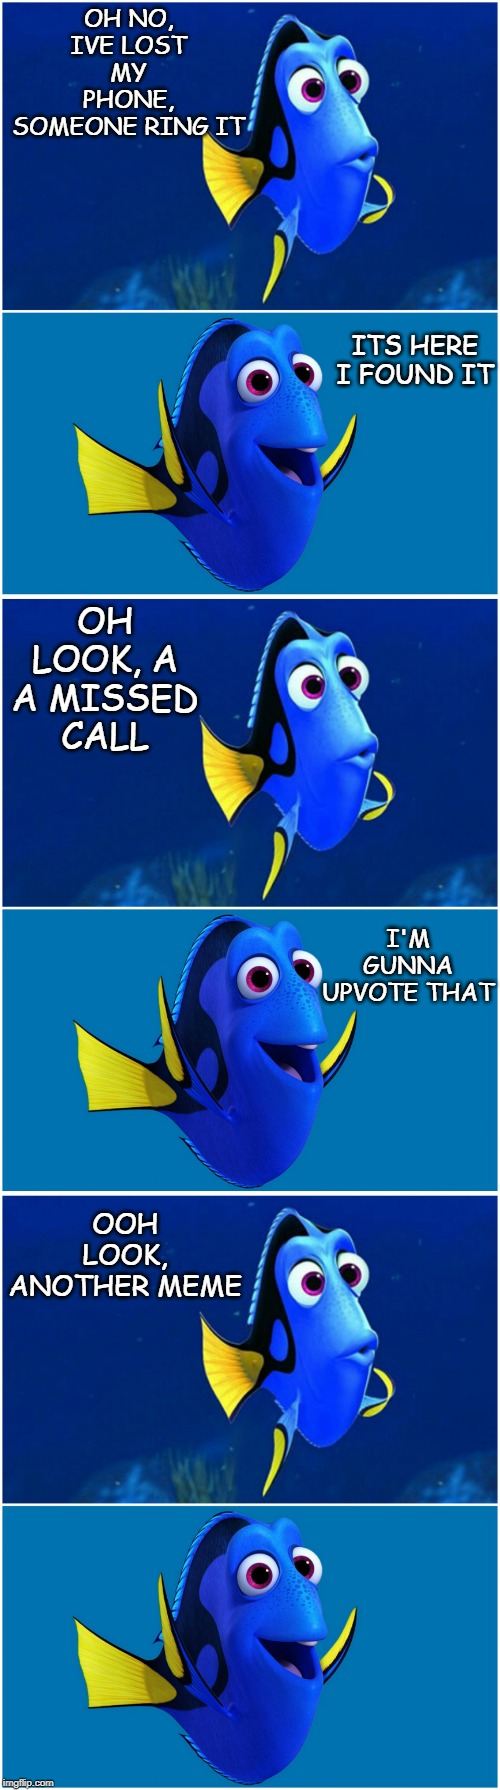 Grinding Neo! | OH NO, IVE LOST MY PHONE, SOMEONE RING IT OOH LOOK, ANOTHER MEME ITS HERE I FOUND IT OH LOOK, A A MISSED CALL I'M GUNNA UPVOTE THAT | image tagged in finding nemo,finding dory,never forget,fishing for upvotes,phone,lol | made w/ Imgflip meme maker